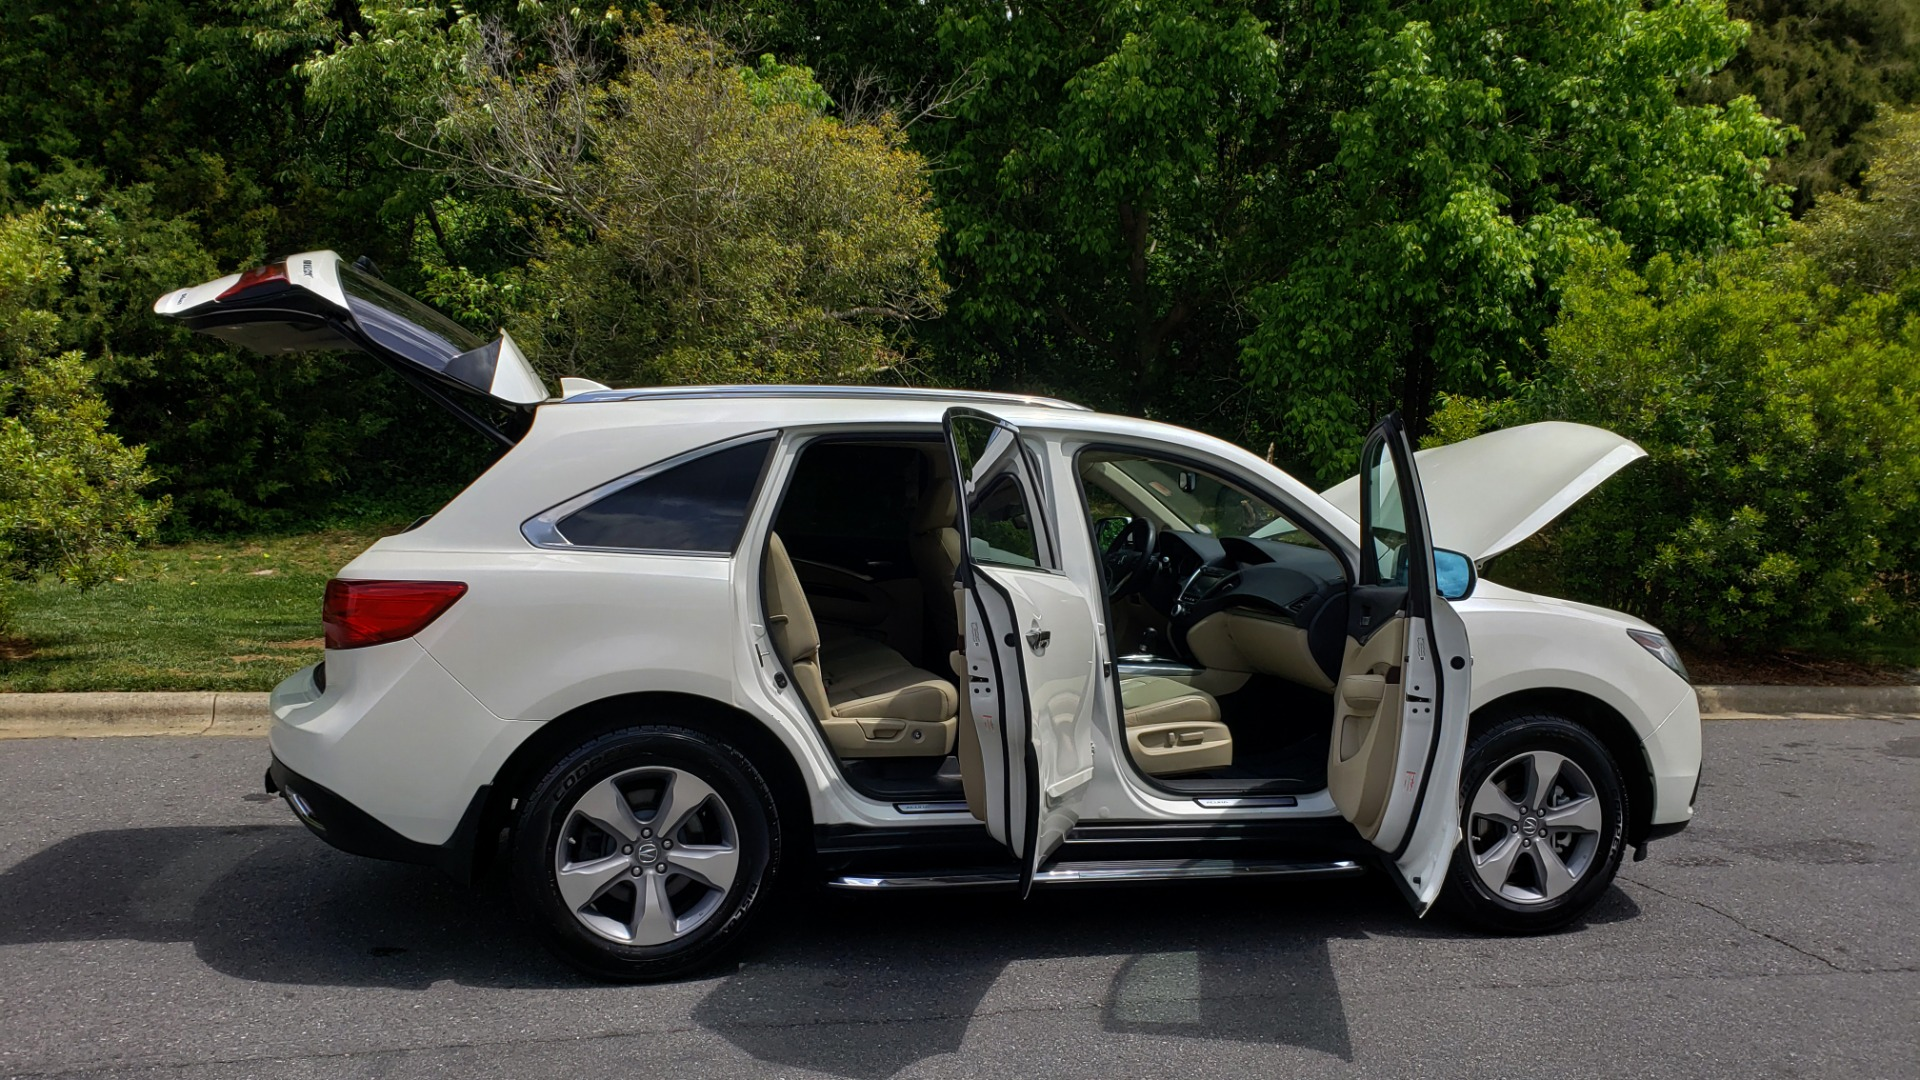 Used 2014 Acura MDX AWD / NAV / SUNROOF / 3-ROW / REARVIEW / PREMIUM SND for sale Sold at Formula Imports in Charlotte NC 28227 11